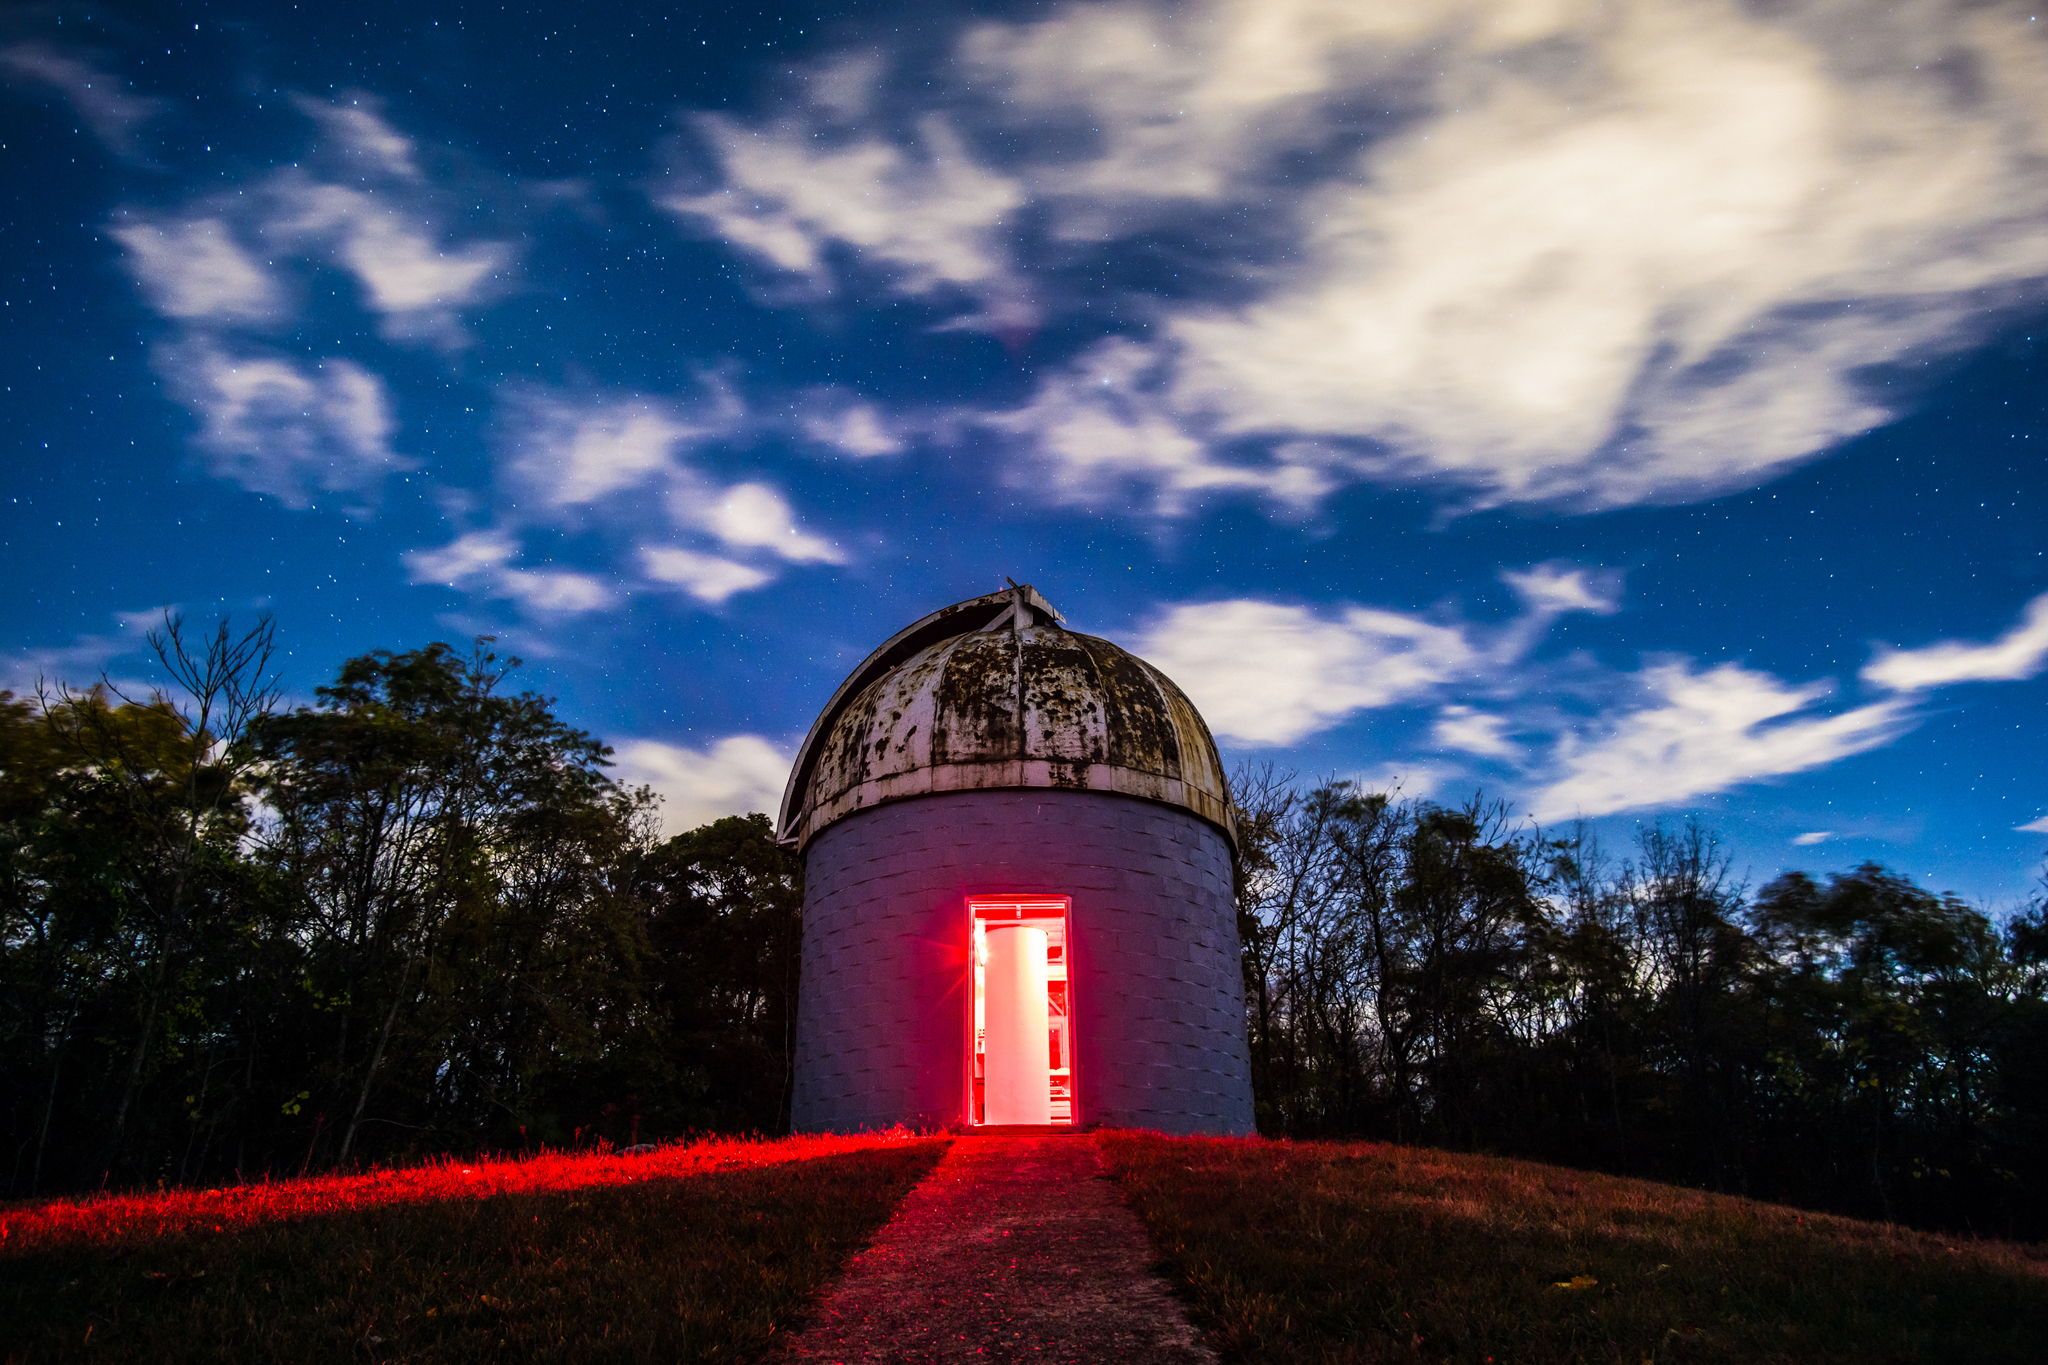 One of my closeset friends, Rena Jaffe, has this one hanging on her living room wall. It's of the Sheep Hill Observatory, nestled in a residential neighborhood of Boonton, New Jersey. It's run by a wonderfully passionate and knowledgeable volunteer astronomical association. It's also  open to the public often .